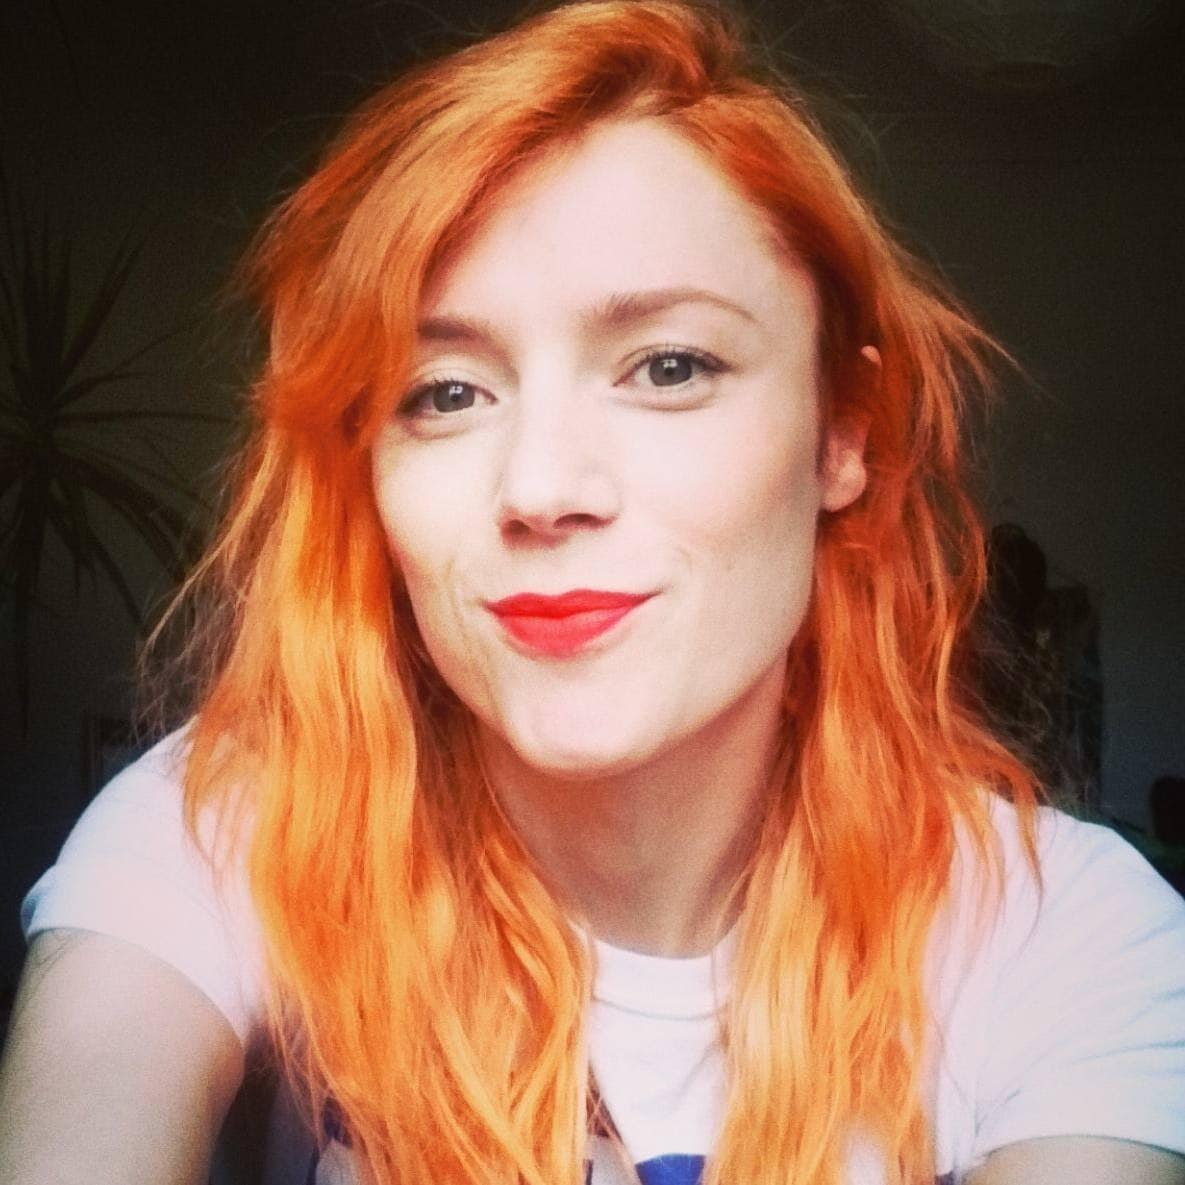 Rhyannon Styles with long orange hair